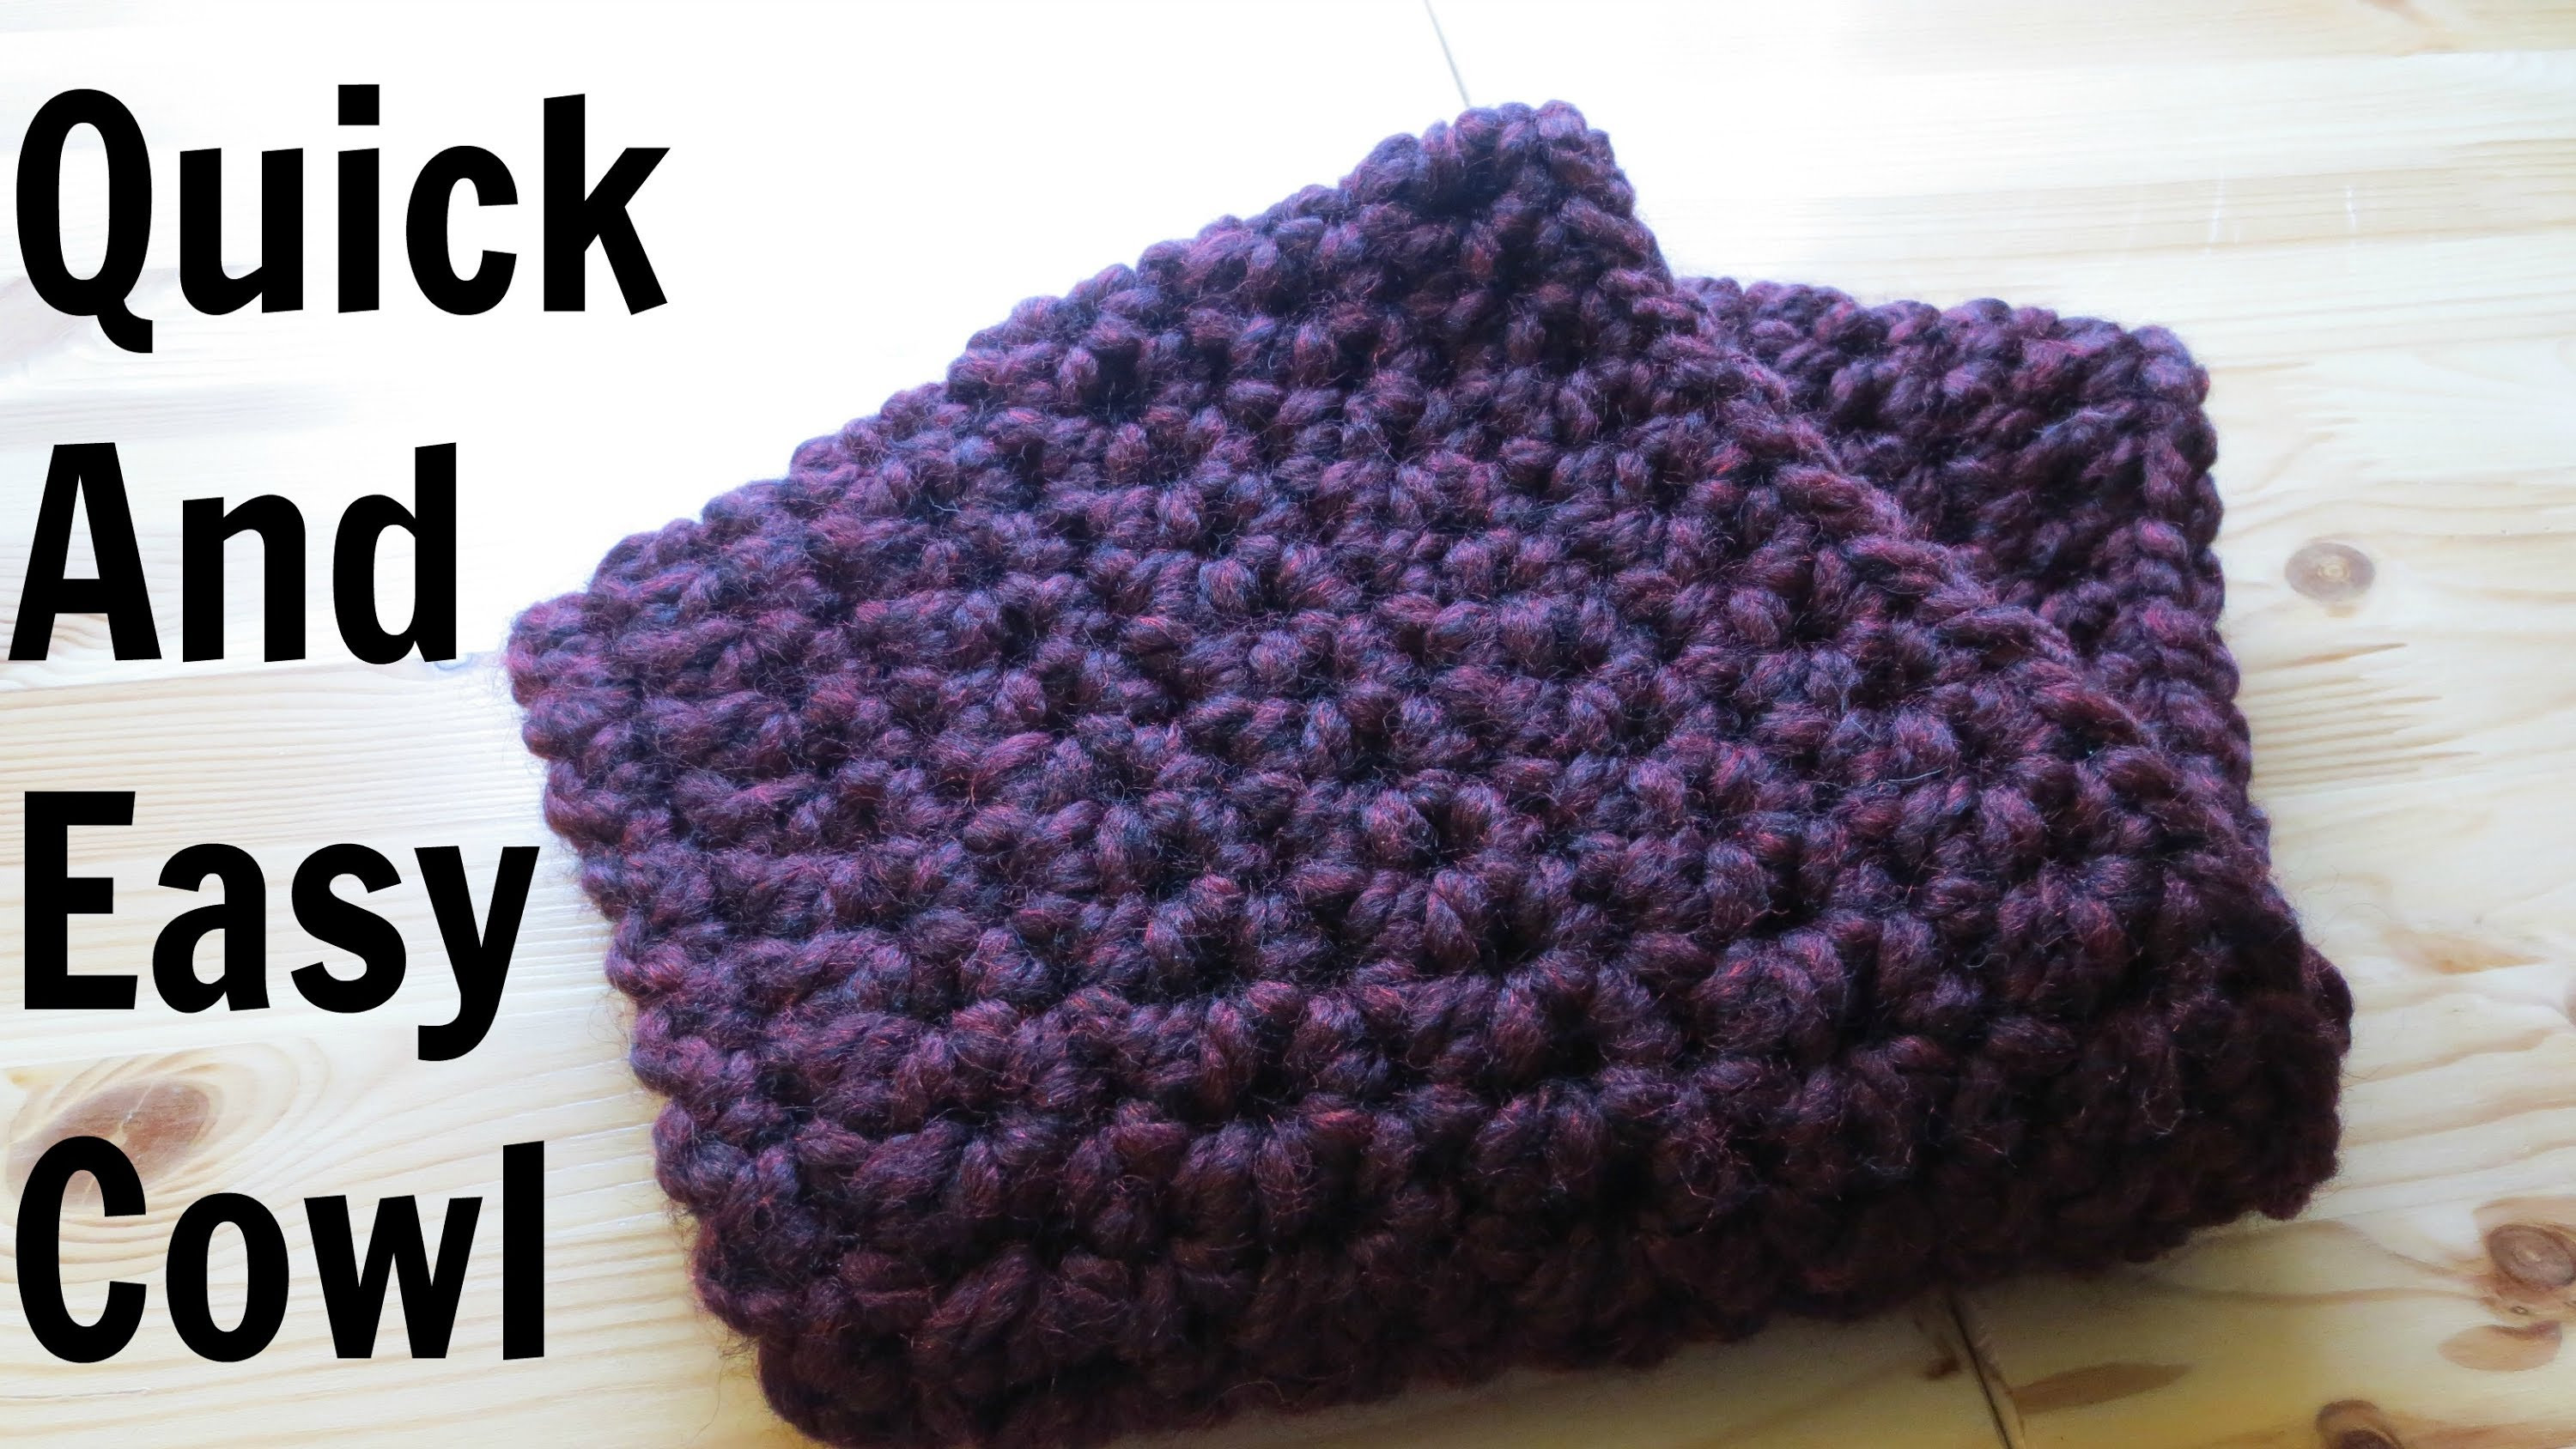 Best Of Quick Easy Crochet Scarf Pattern Crochet and Knit Free Quick and Easy Crochet Scarf Patterns Of Wonderful 42 Photos Free Quick and Easy Crochet Scarf Patterns